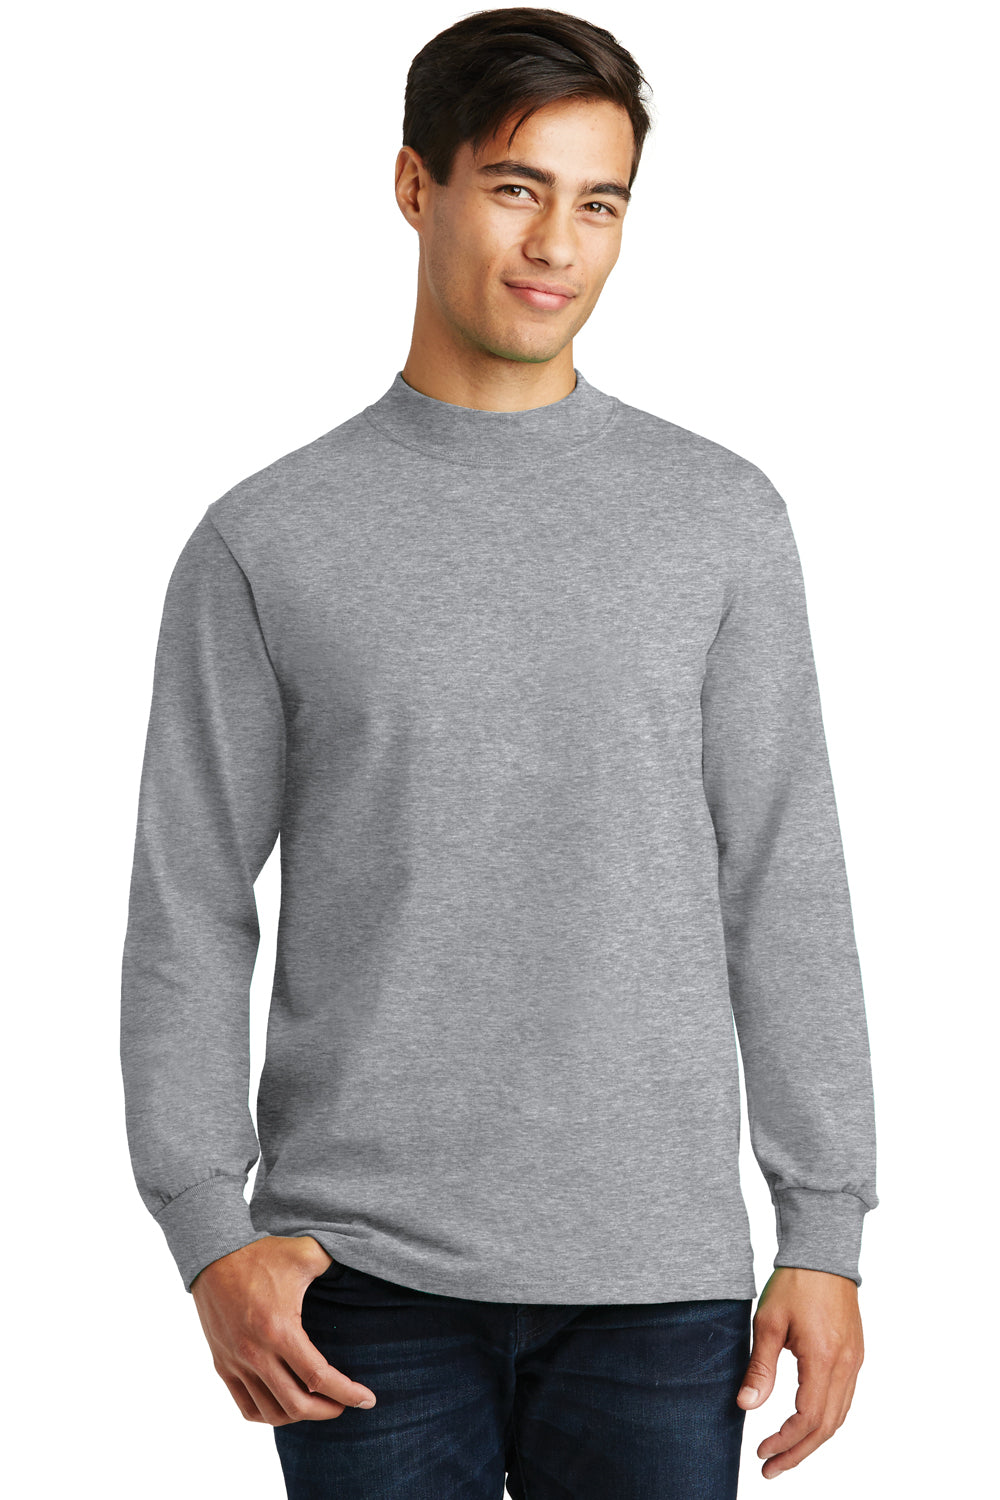 Port & Company PC61M Mens Essential Long Sleeve Mock Neck T-Shirt Heather Grey Front